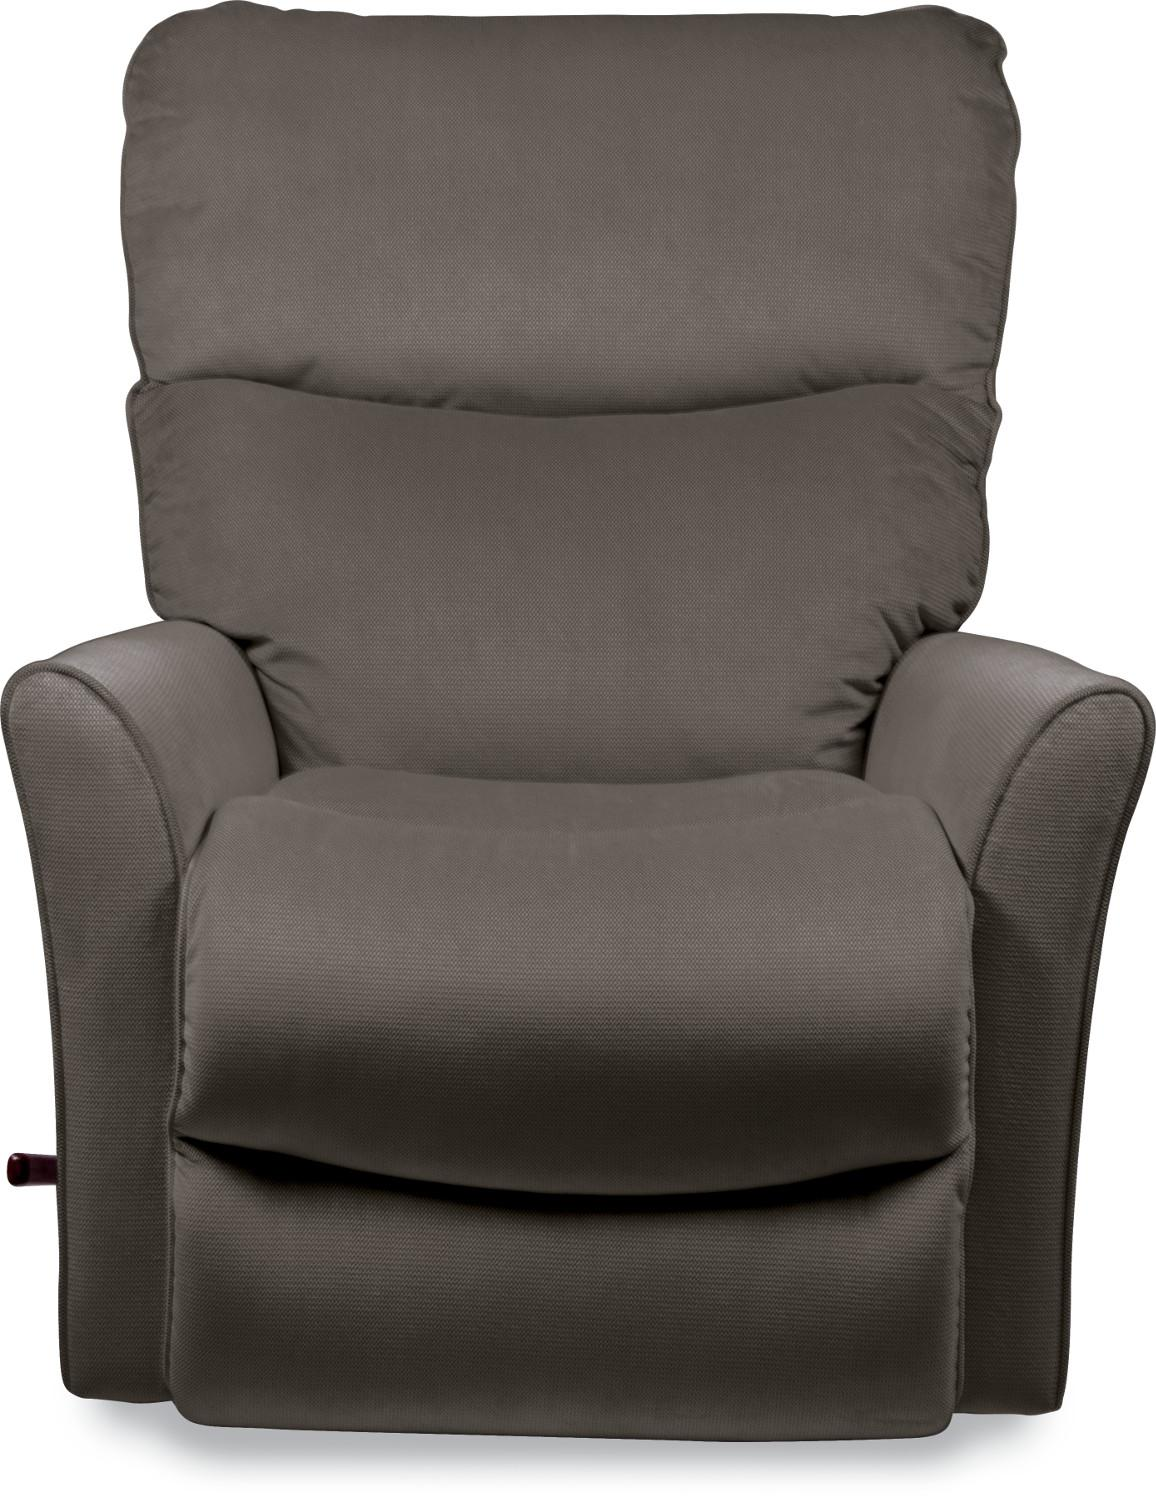 Small Scale Reclina Rocker 174 Recliner With Flared Arms By